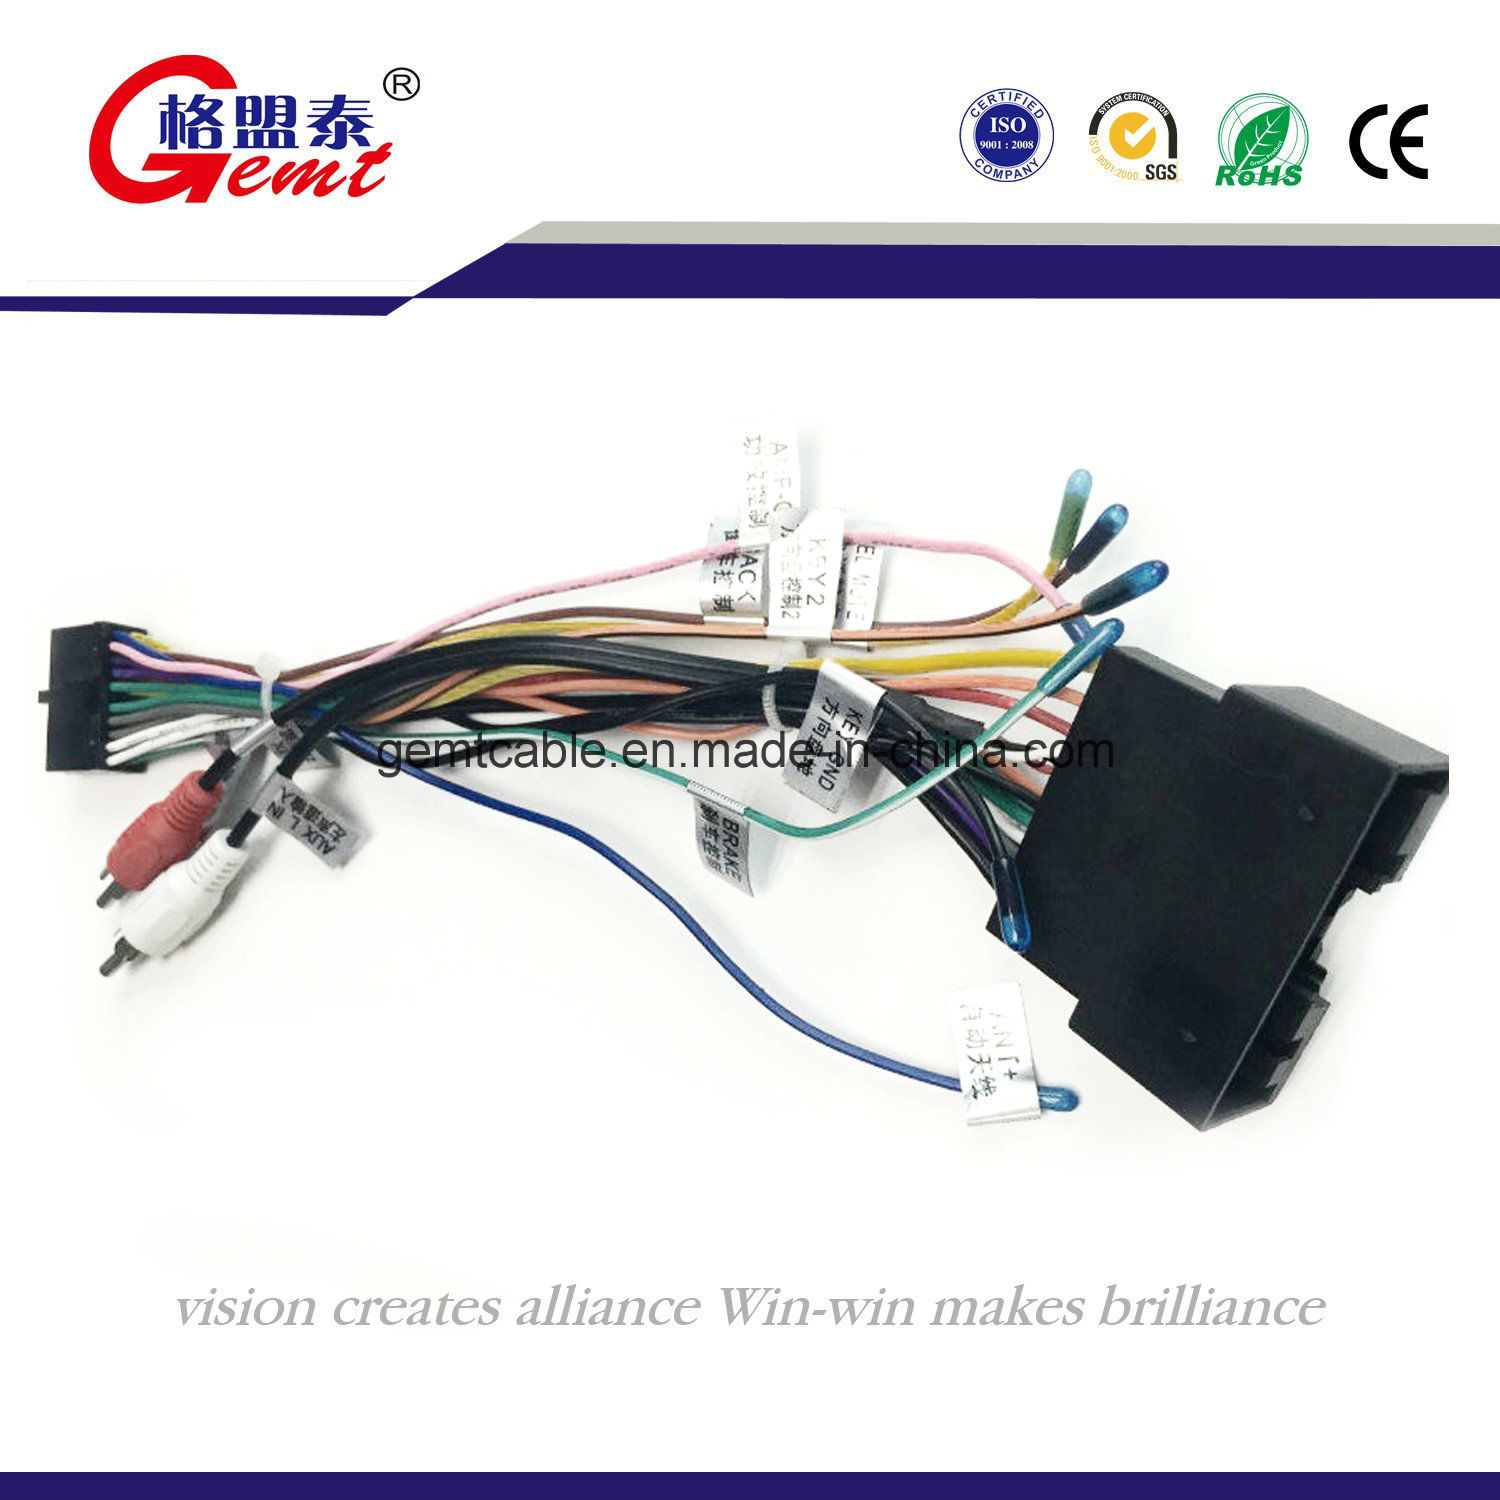 hight resolution of  hot item f505 power cord auto cable wire harness car audio wire harness automotive wire harness computer wiring harness automotive audio wiring harness